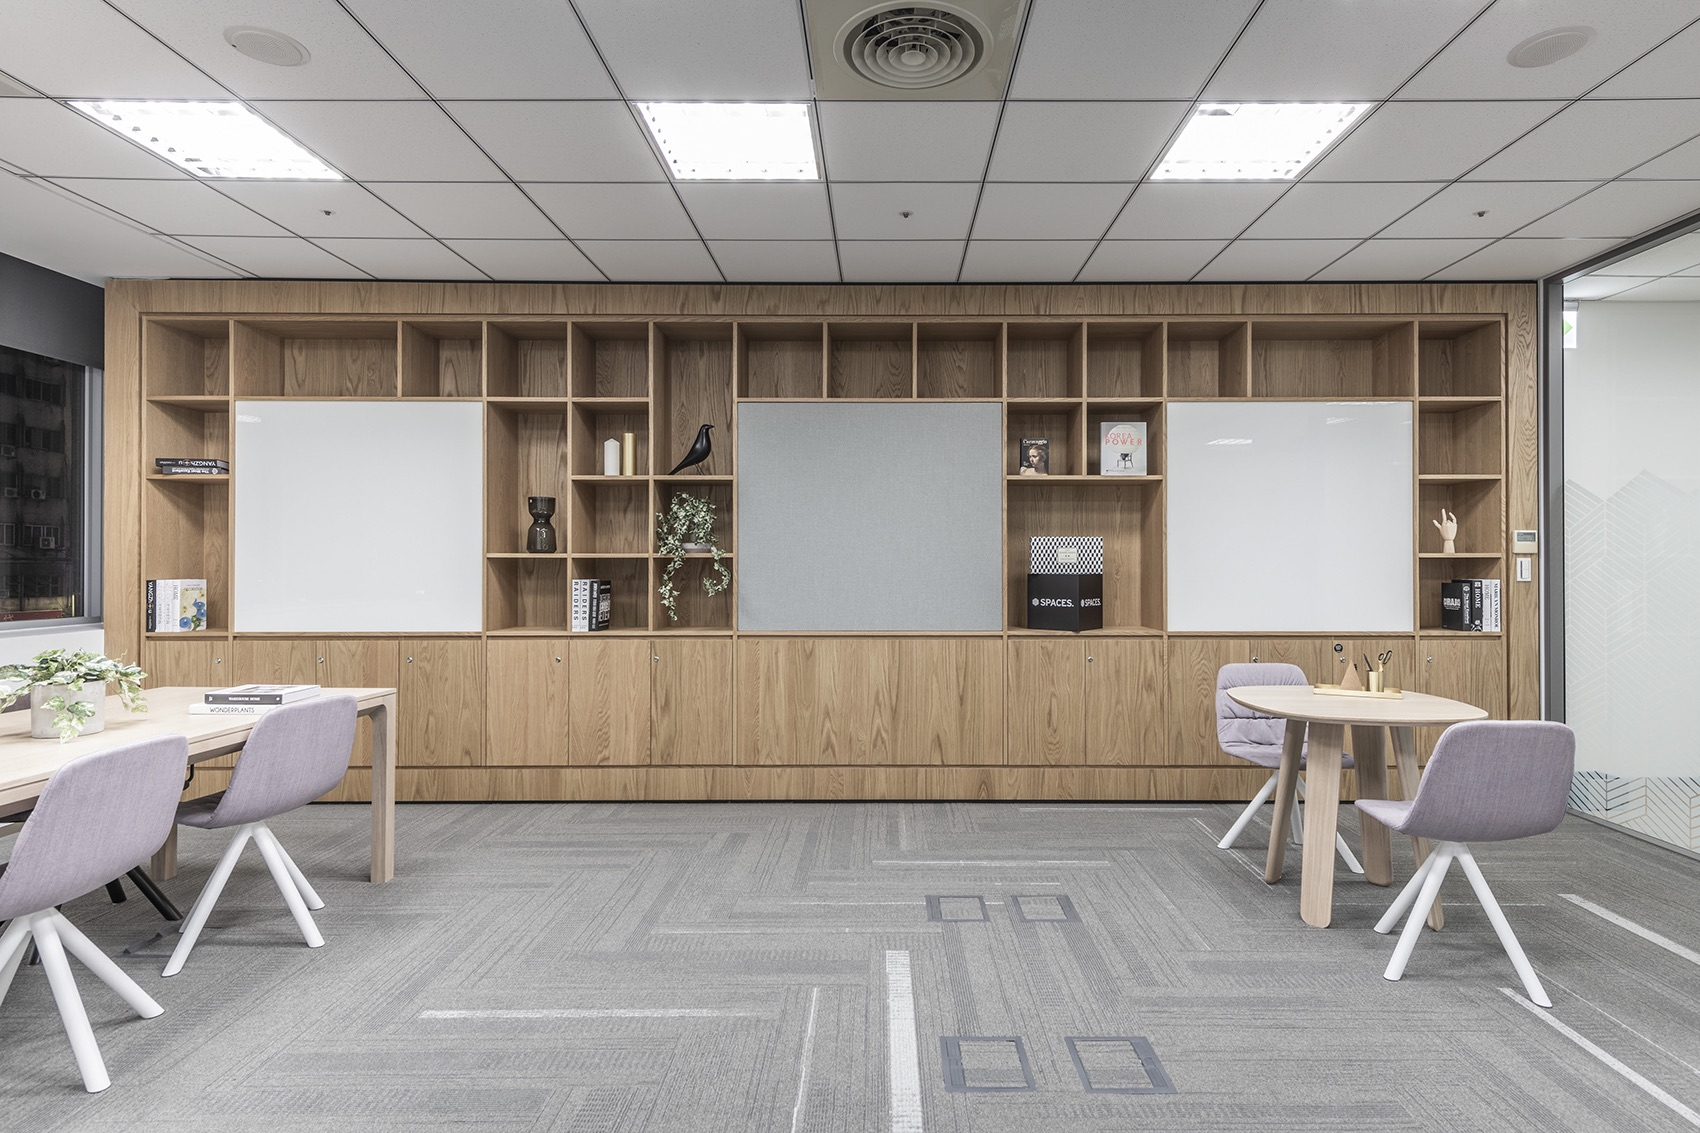 spaces-coworking-taiwan-18